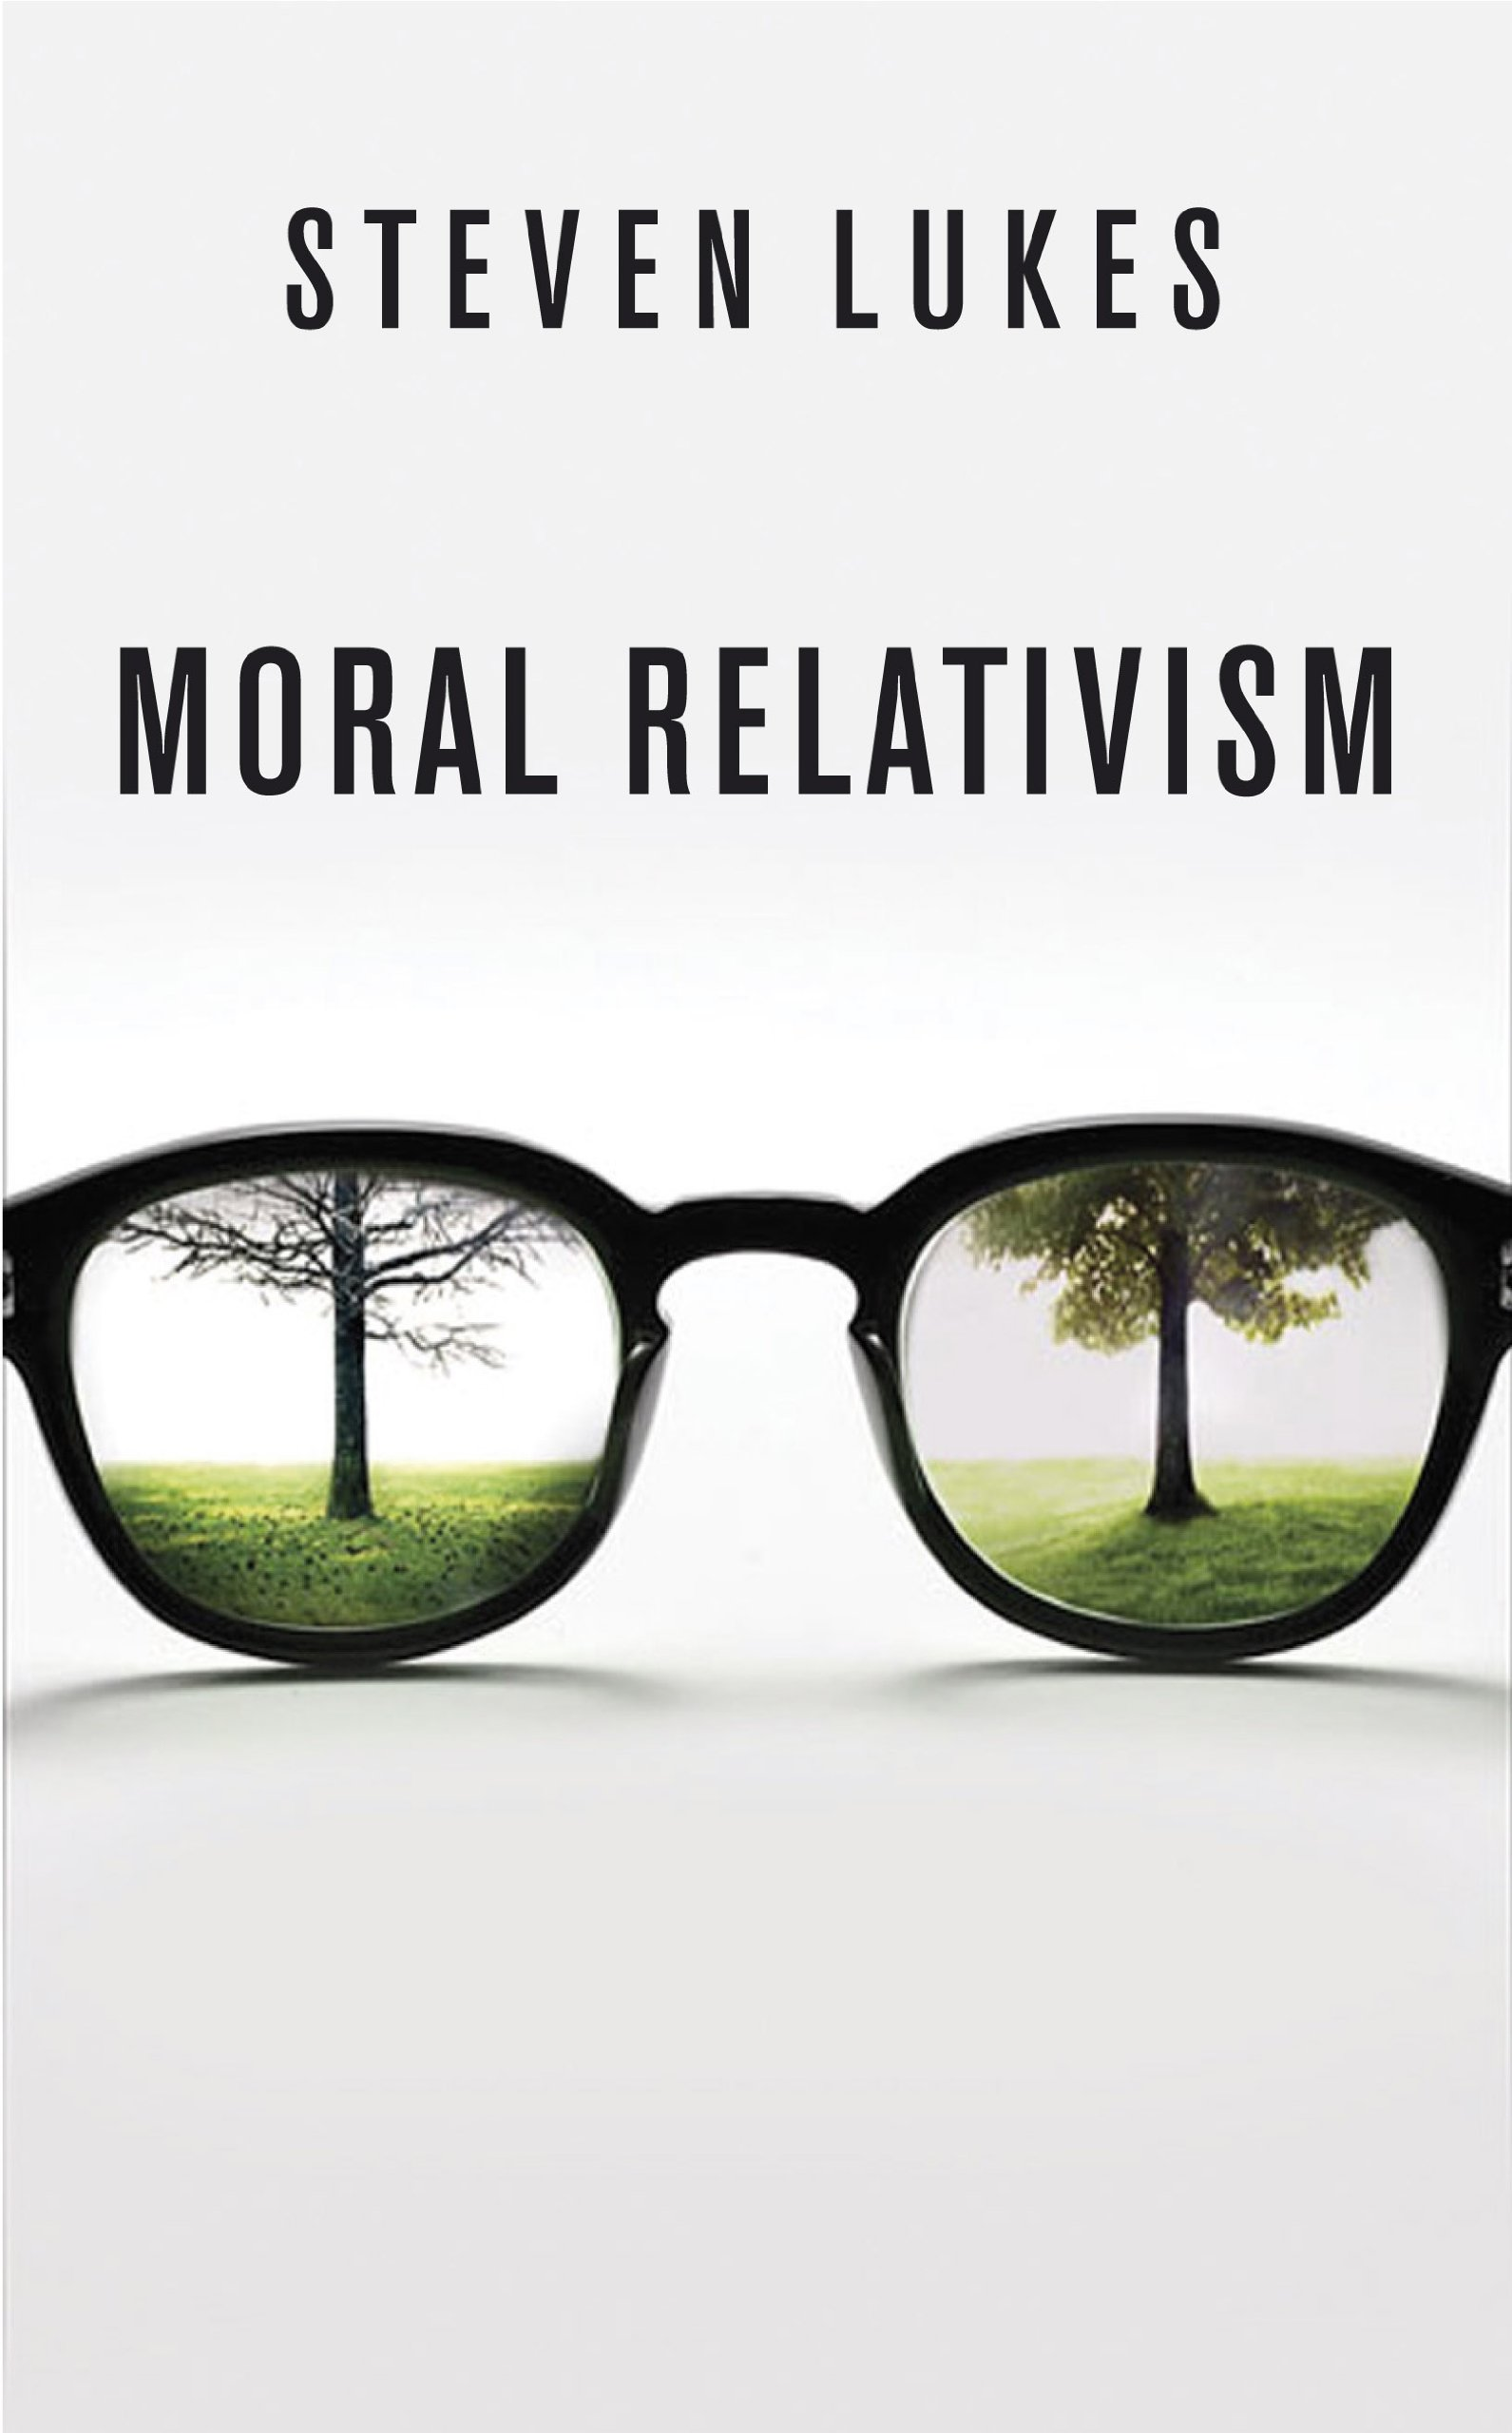 moral relativism big ideas amazon co uk steven lukes moral relativism big ideas amazon co uk steven lukes 9781846680090 books